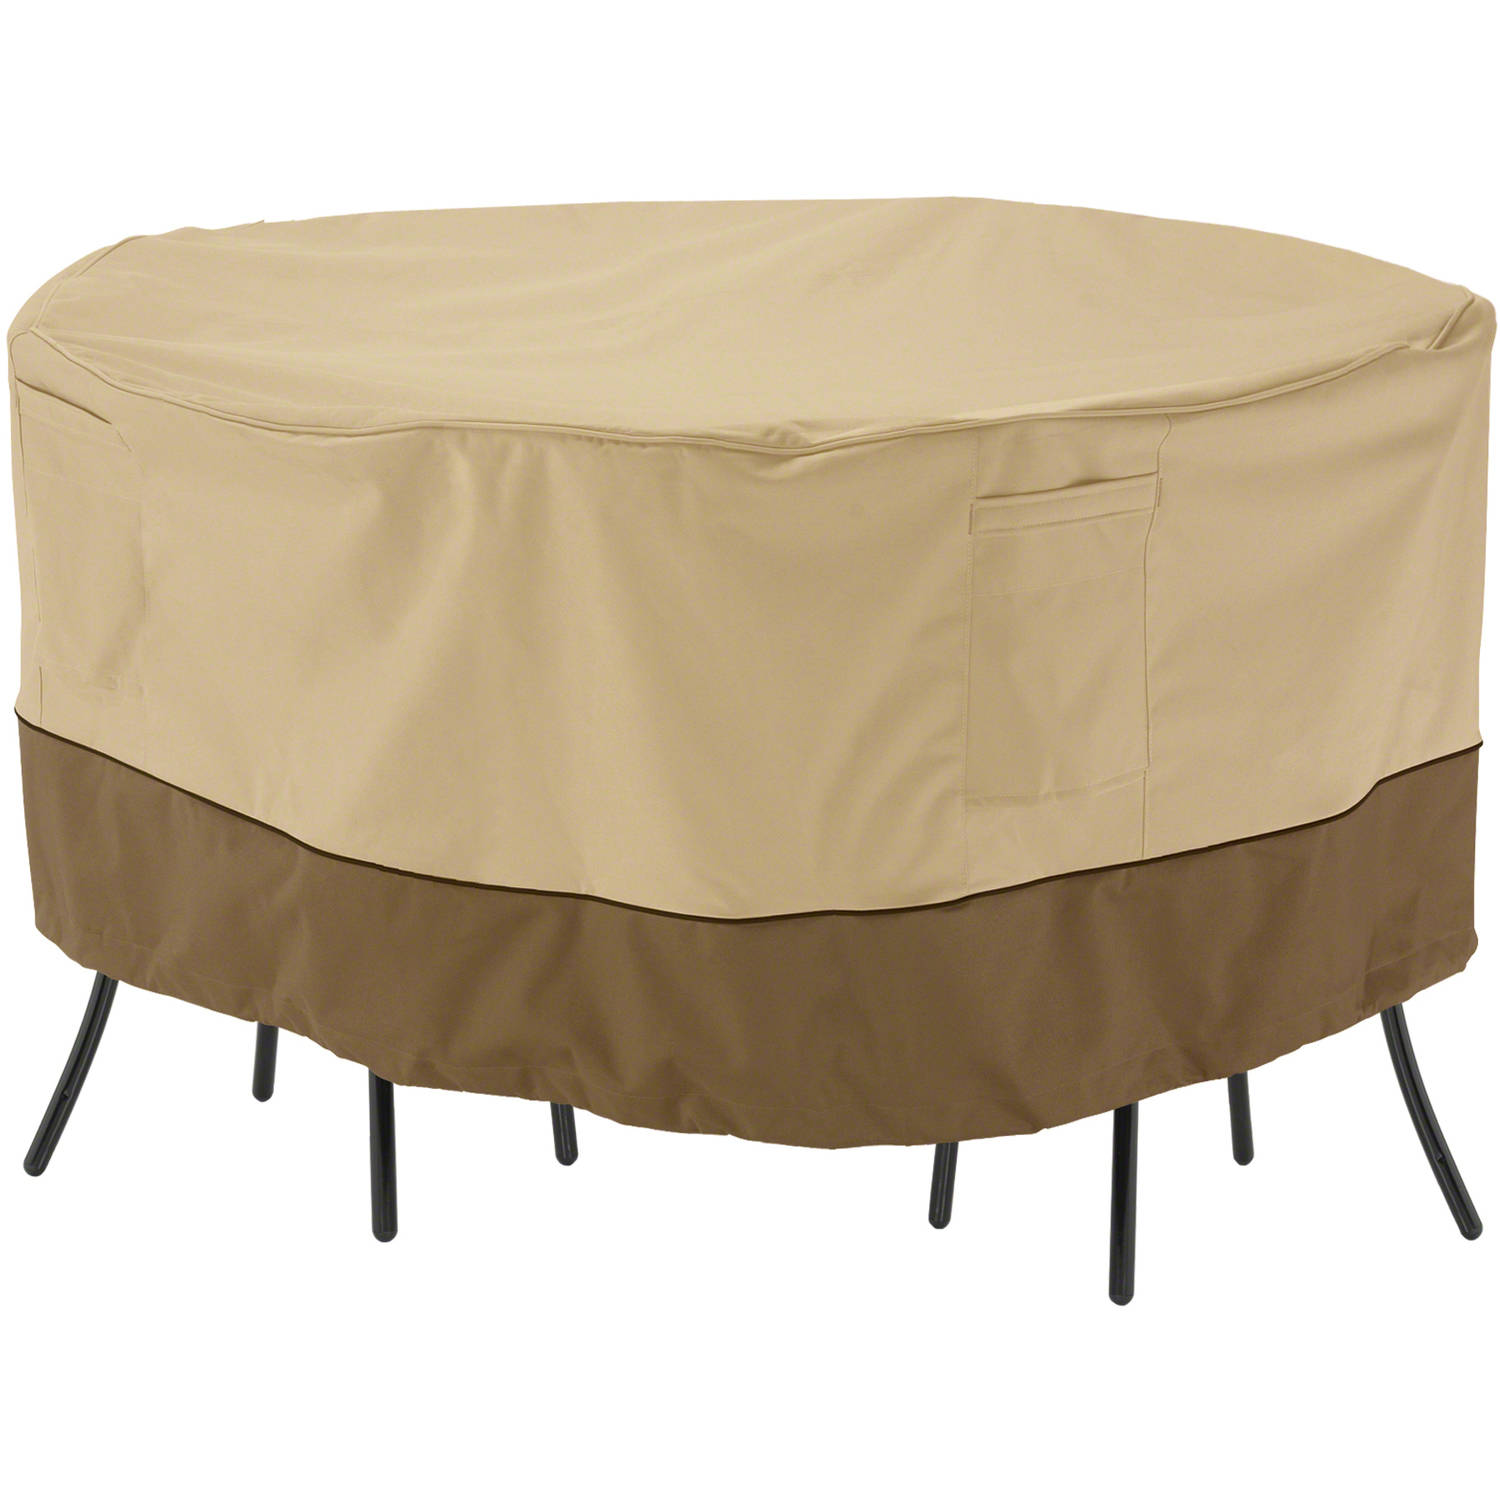 "Classic Accessories Veranda Patio Round Bistro Table and Chair Set Furniture Storage Cover, fits up to 54"" diameter"